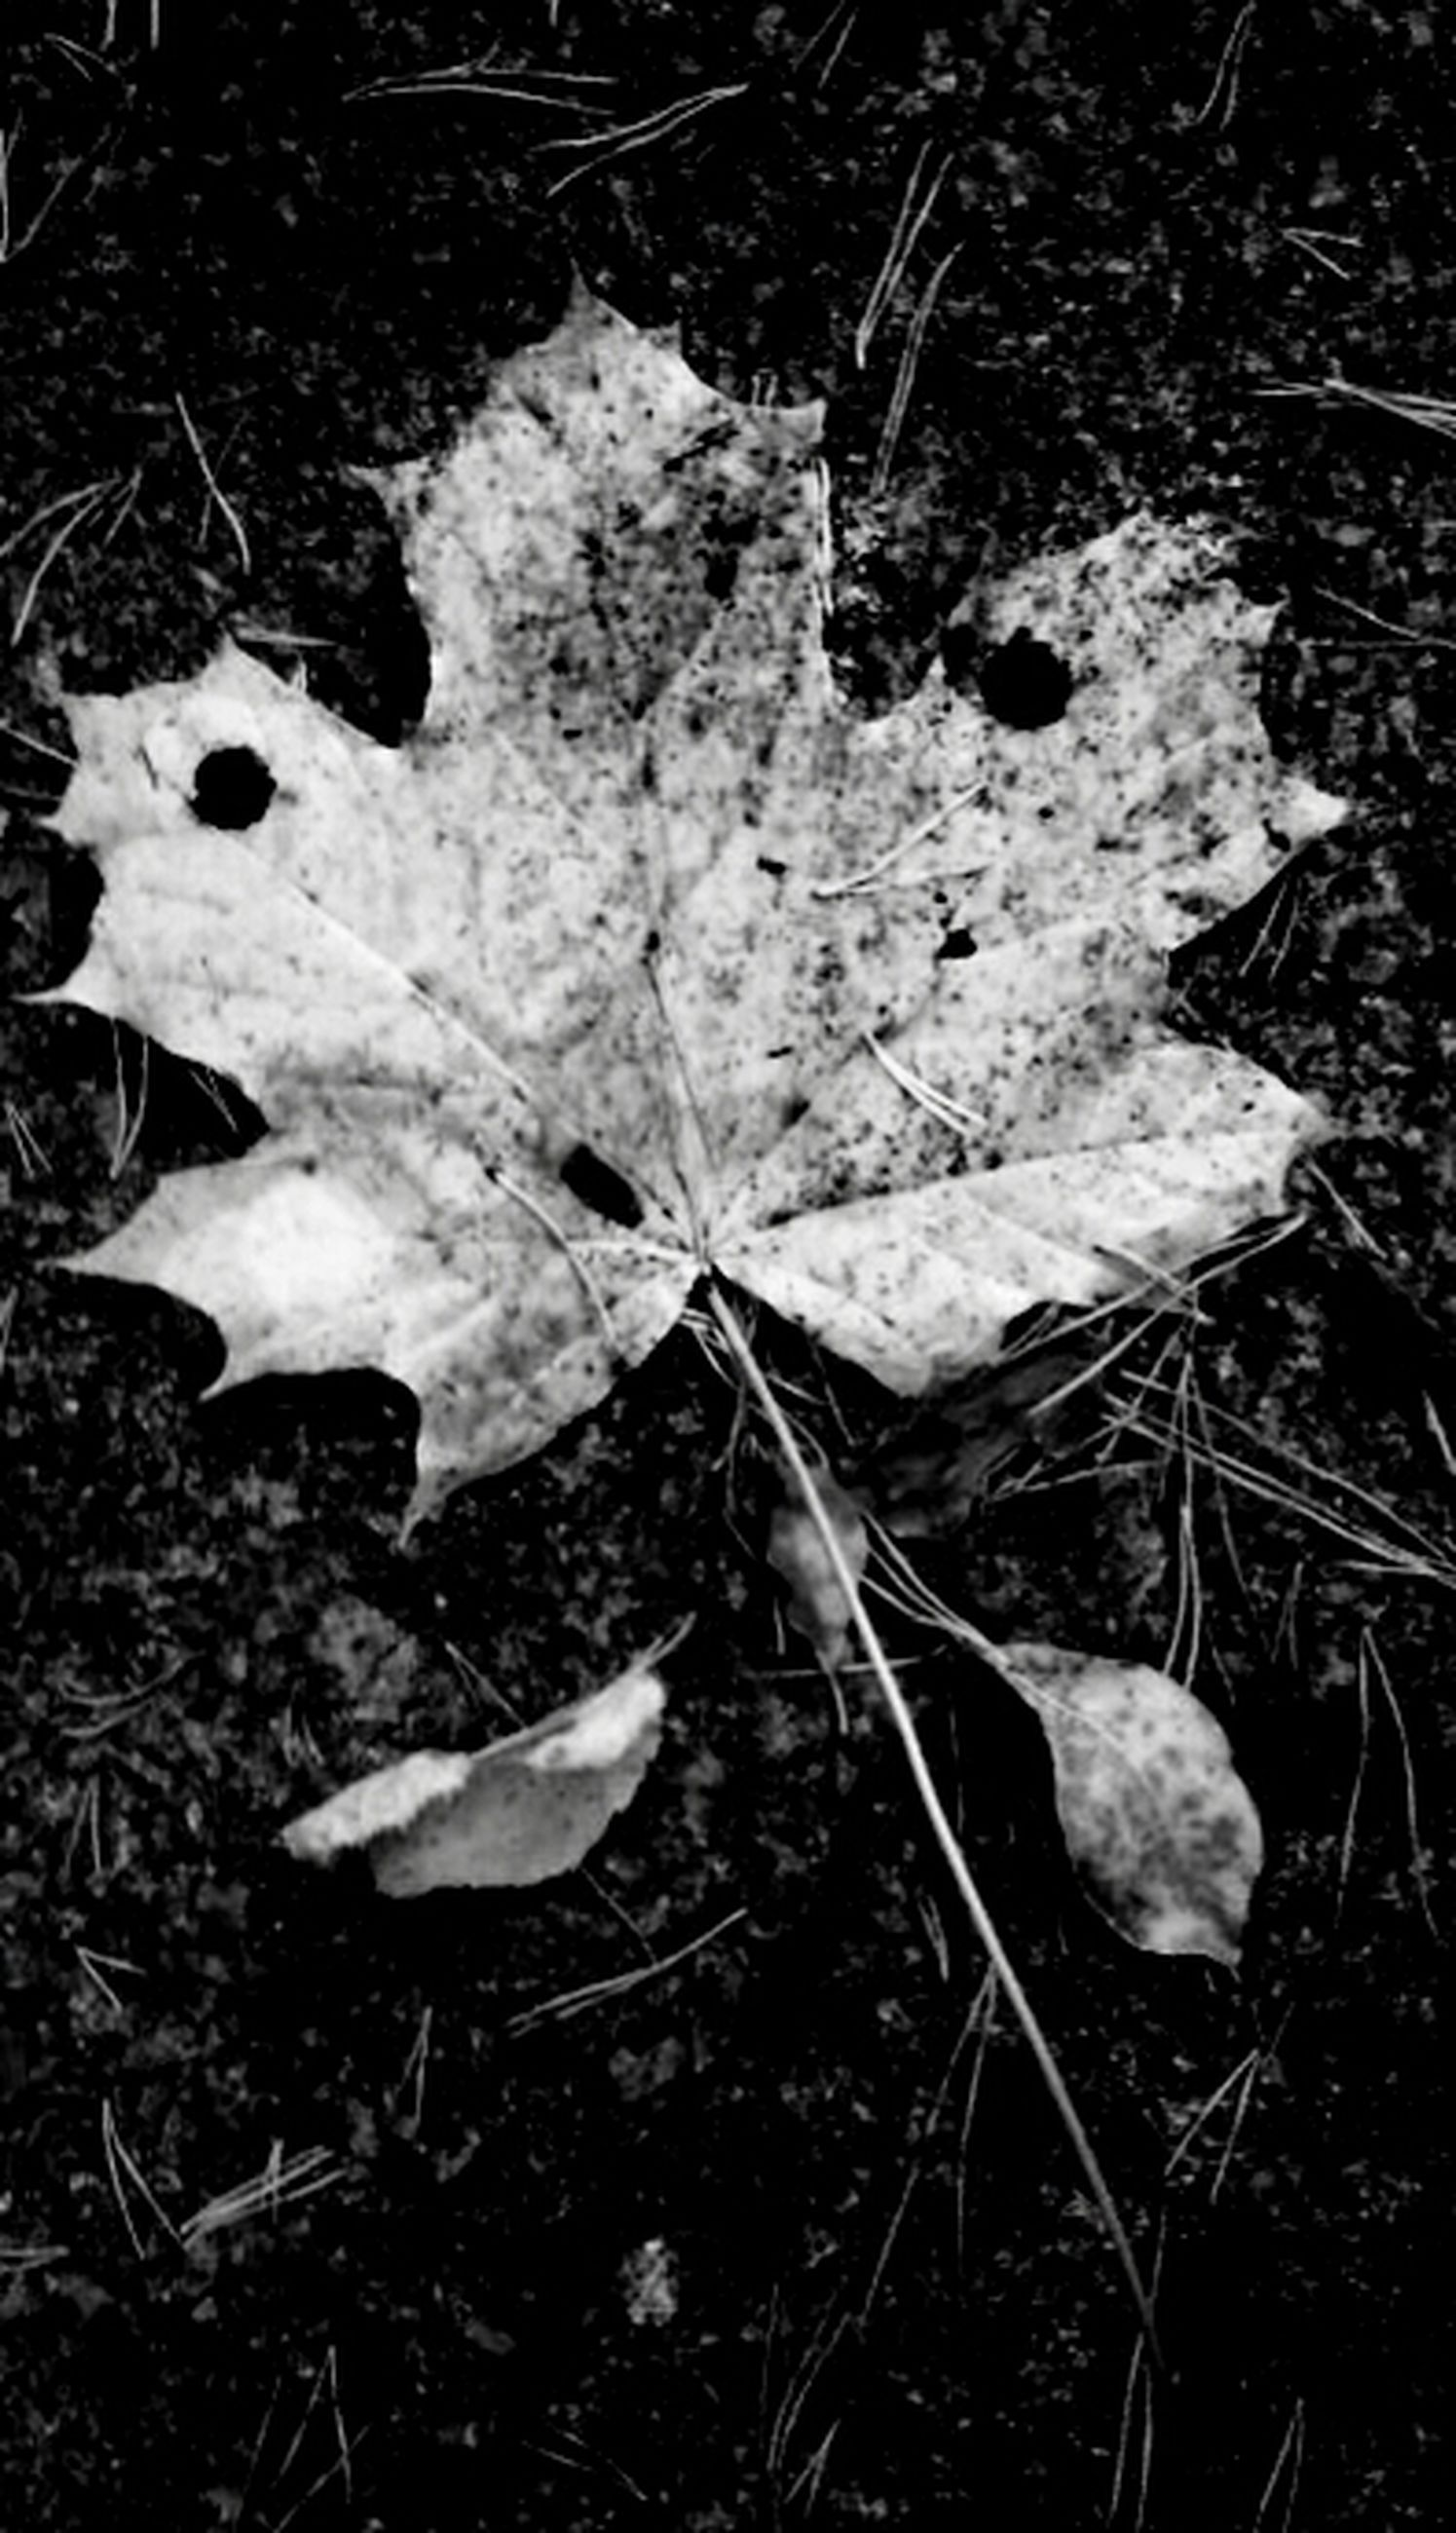 leaf, dry, autumn, leaves, change, nature, leaf vein, season, close-up, high angle view, fallen, fragility, natural pattern, ground, growth, plant, maple leaf, field, beauty in nature, day